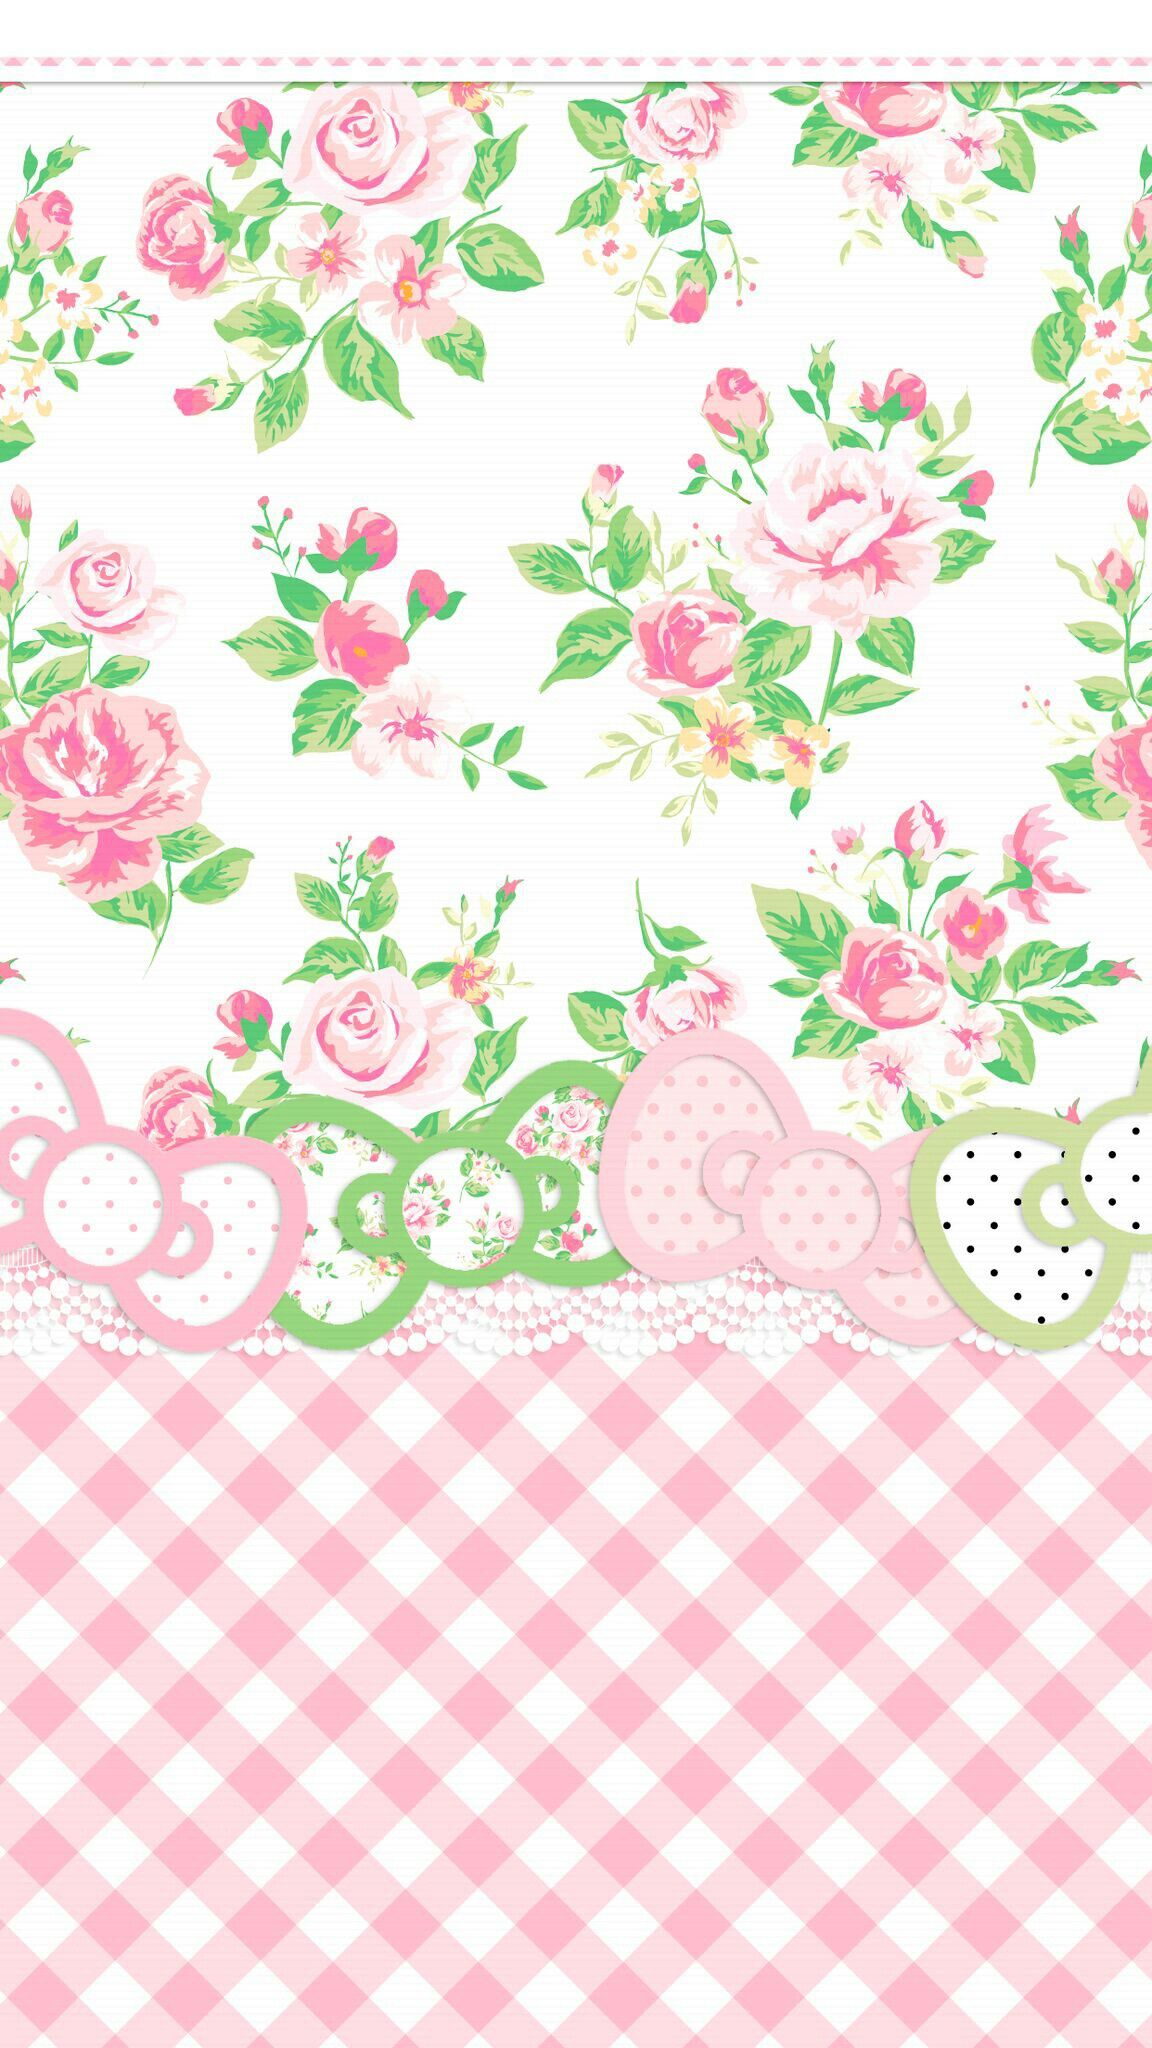 iPhone Wallpaper preppy pink & green gingham check